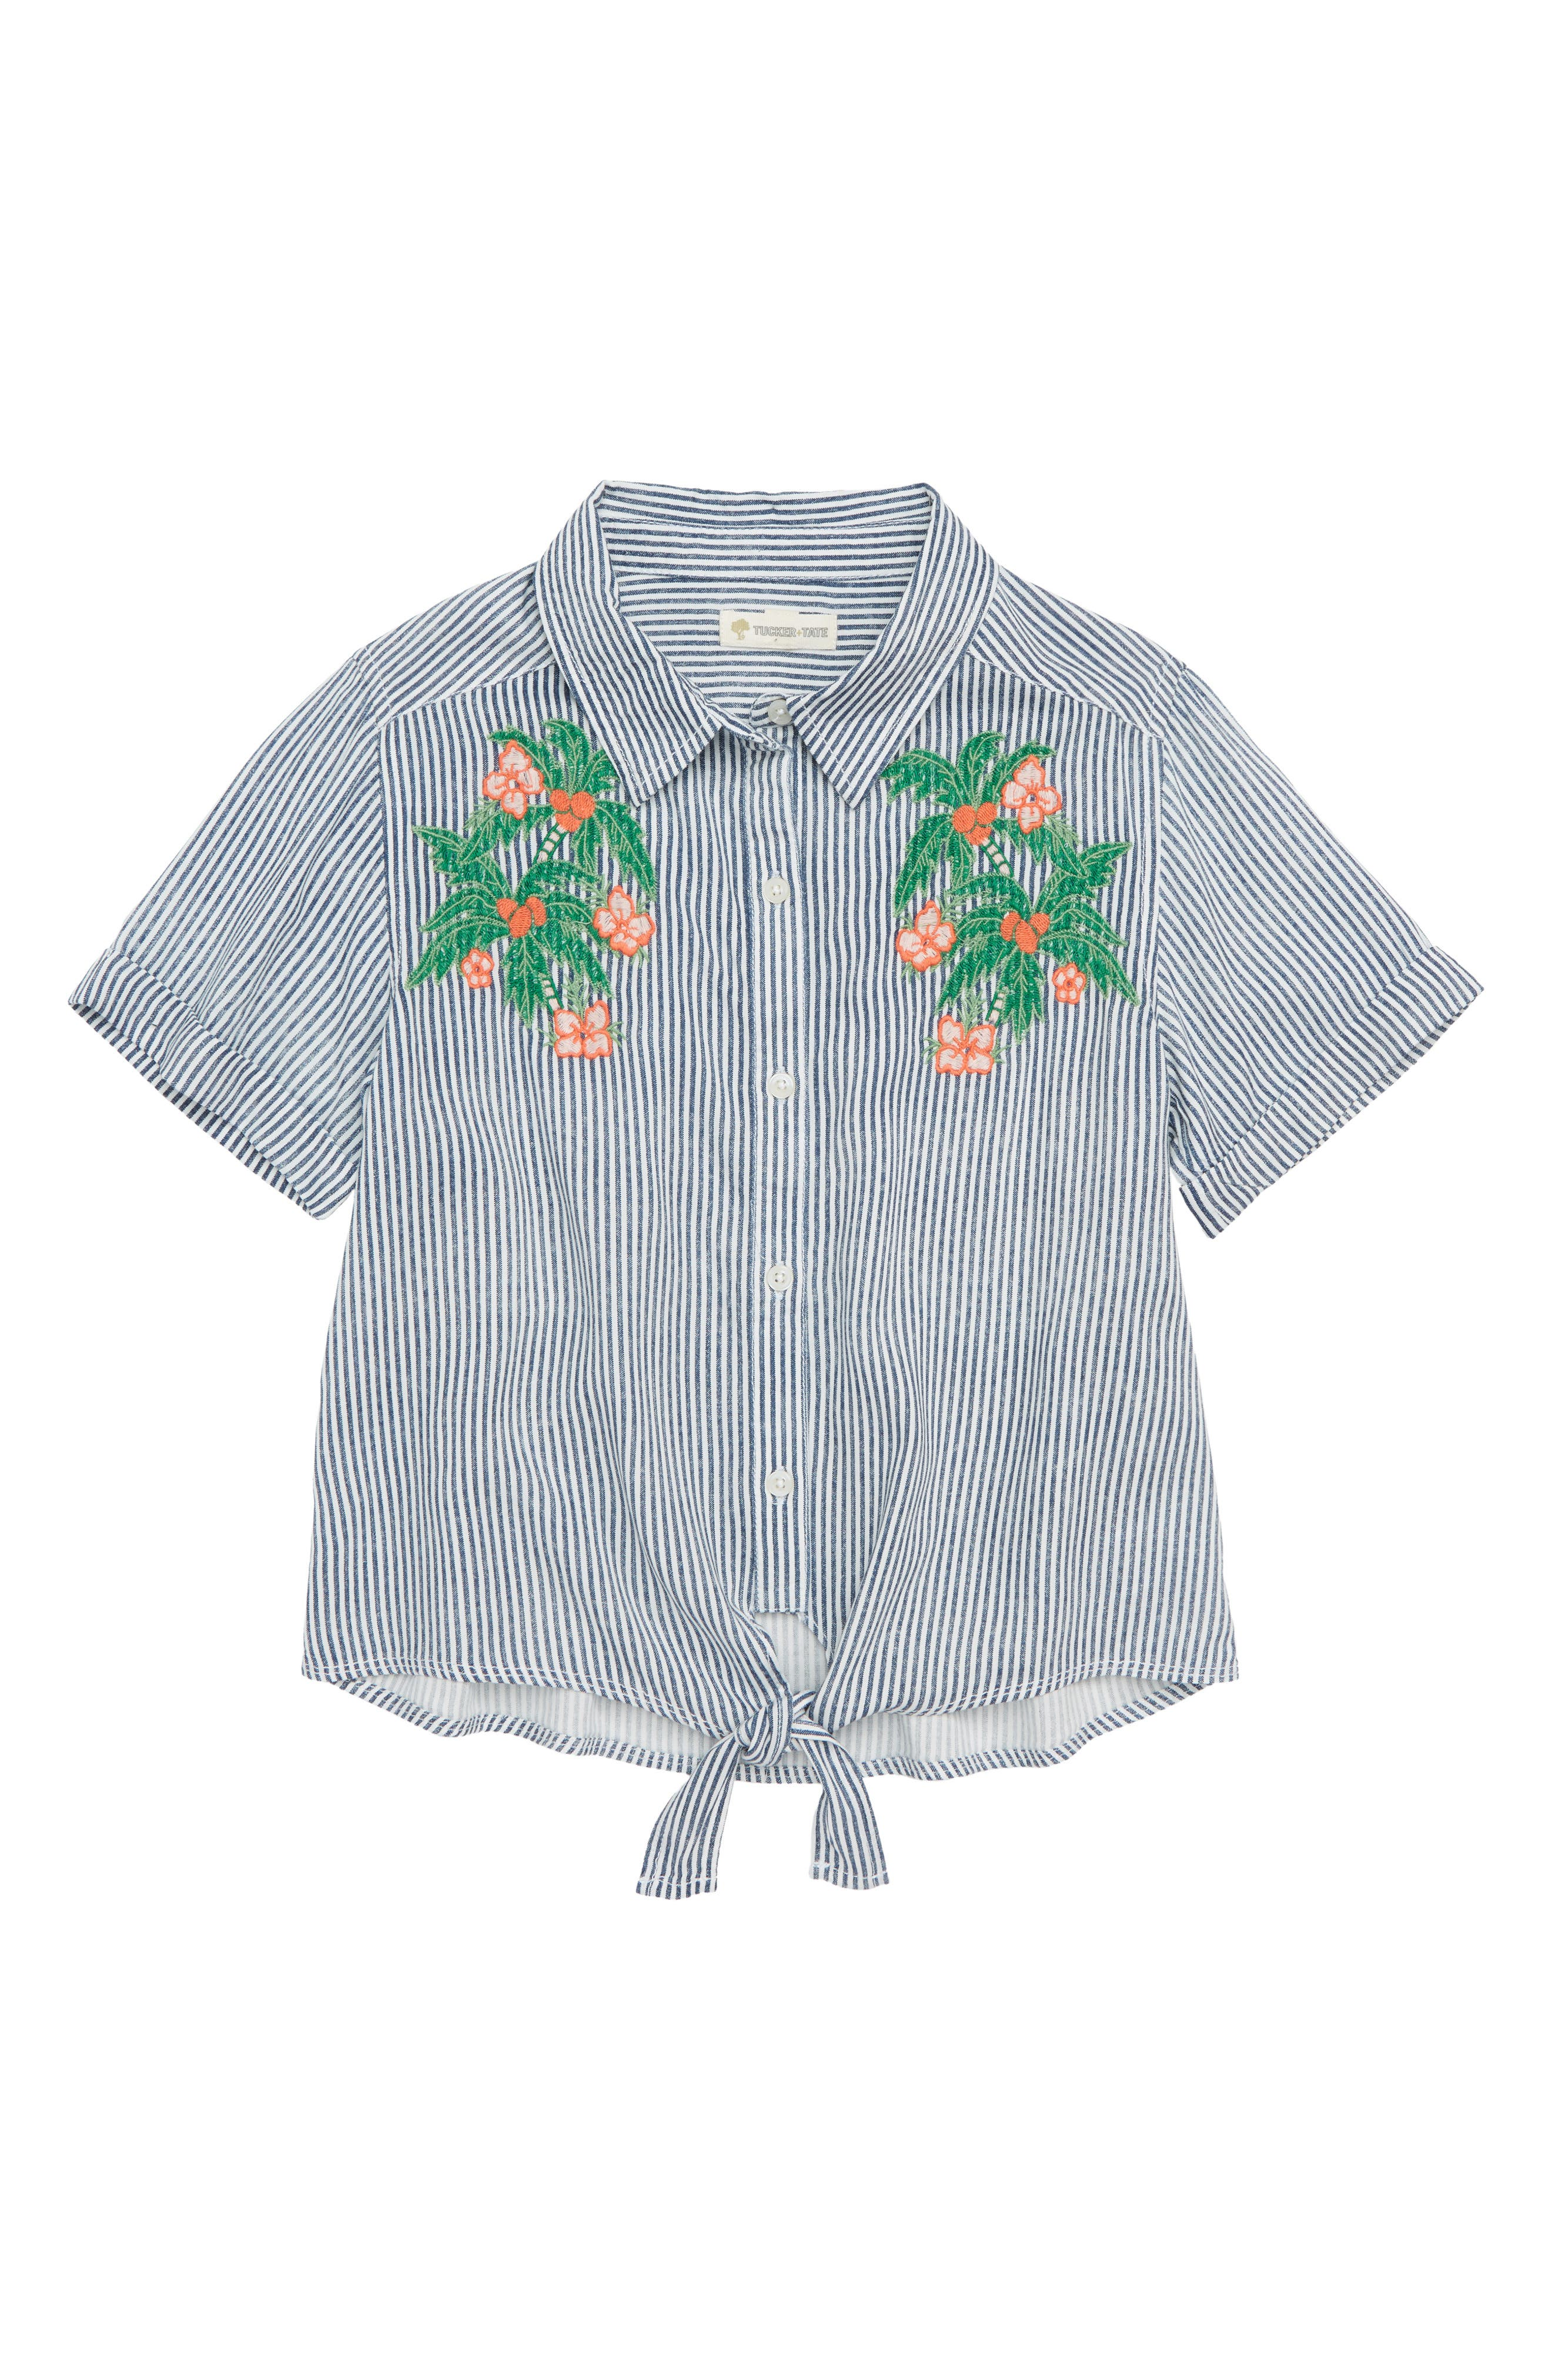 Alternate Image 1 Selected - Tucker + Tate Embroidered Stripe Top (Big Girls)